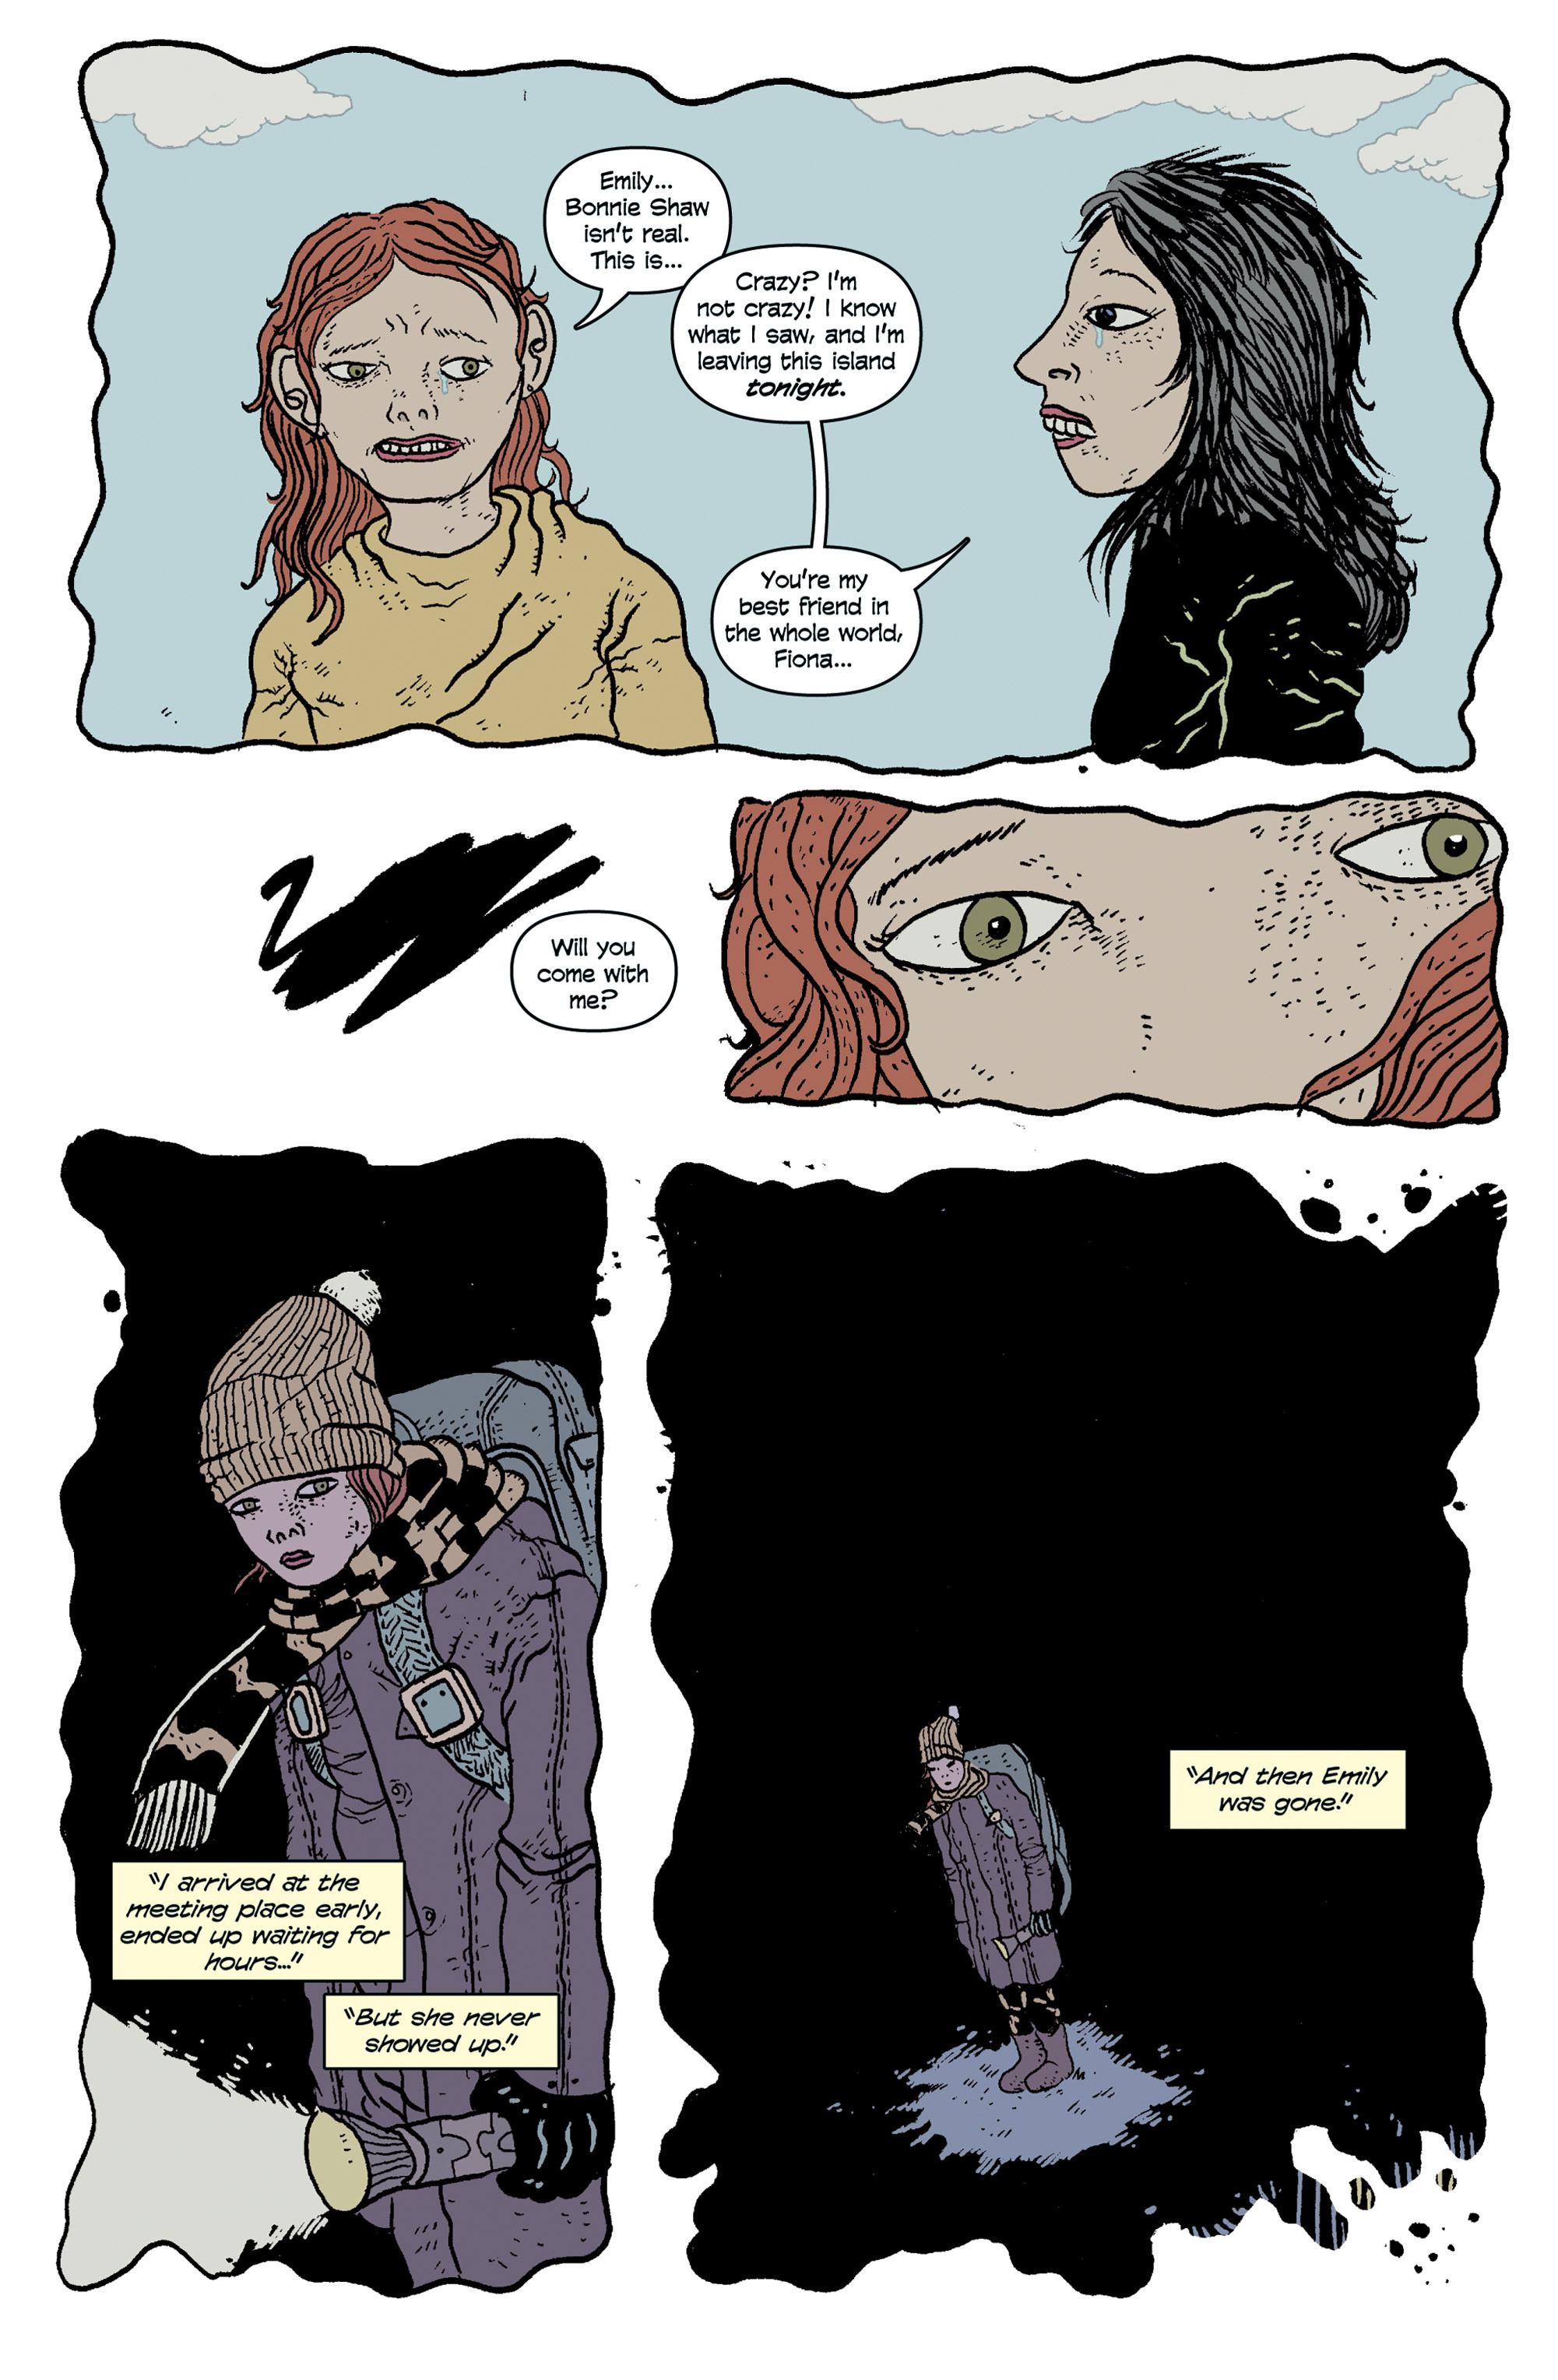 Read online And Then Emily Was Gone comic -  Issue #1 - 12